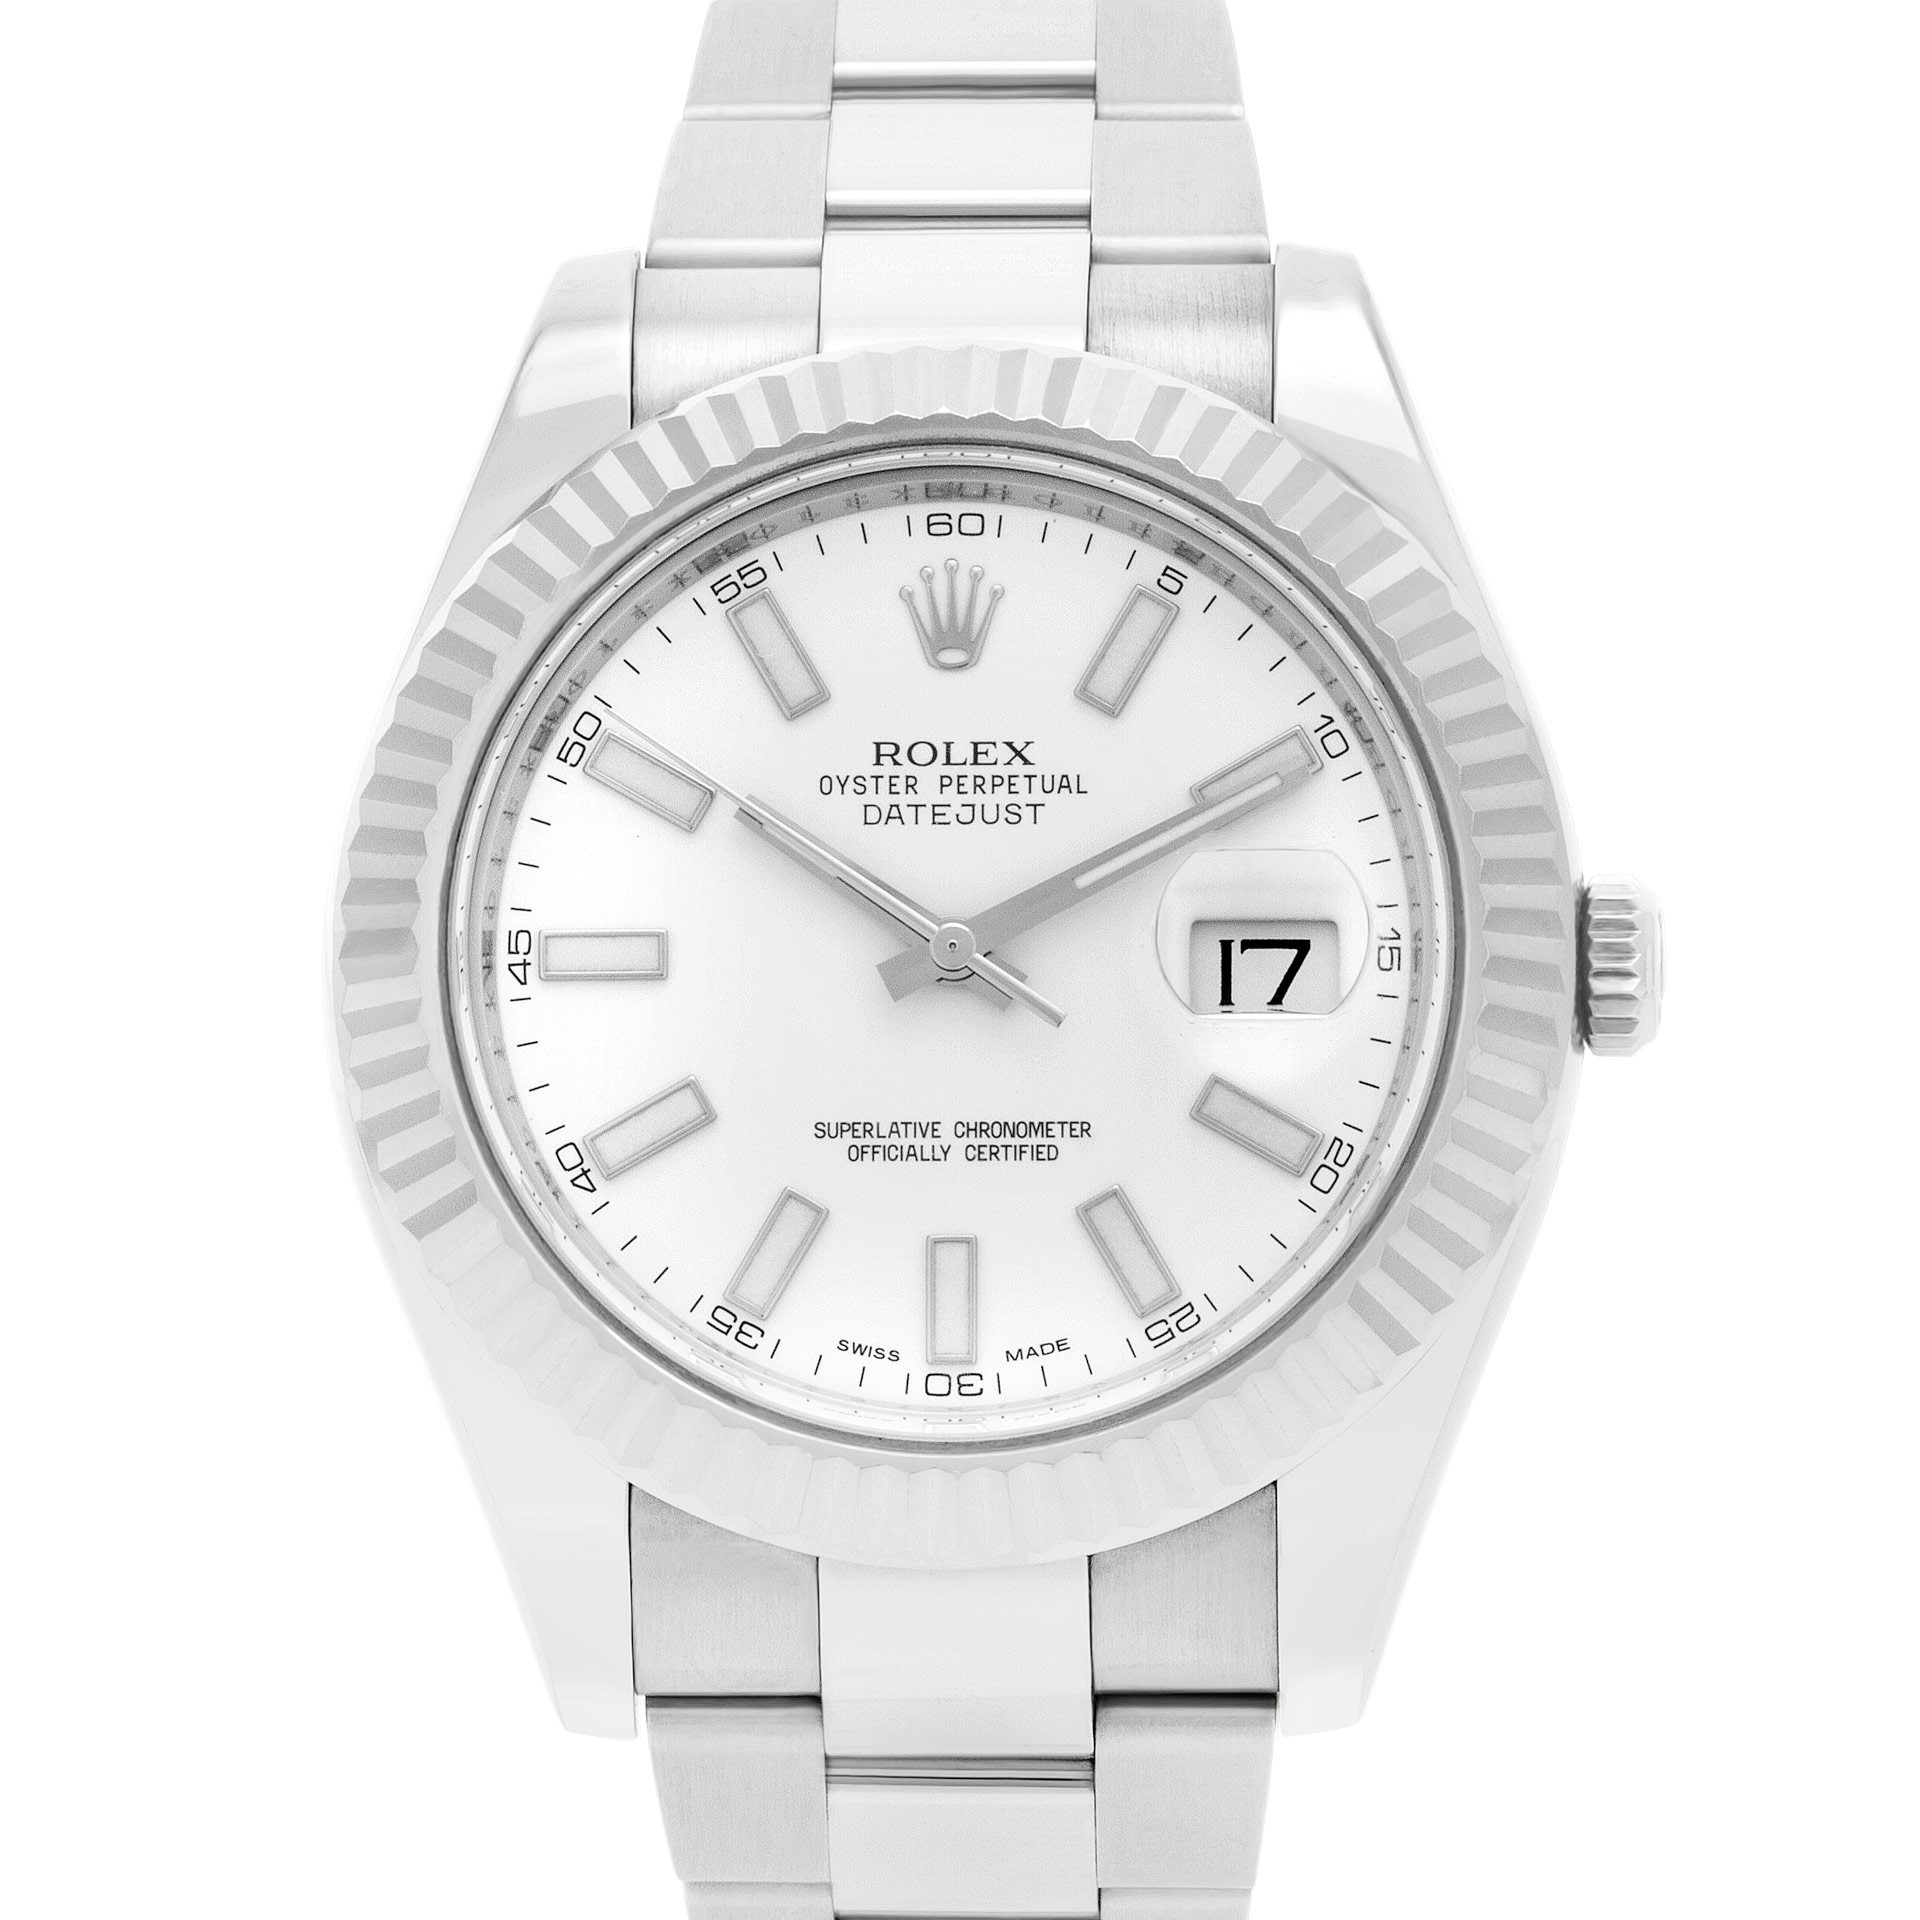 Pre owned Rolex Datejust II 116334 stainless steel 41mm